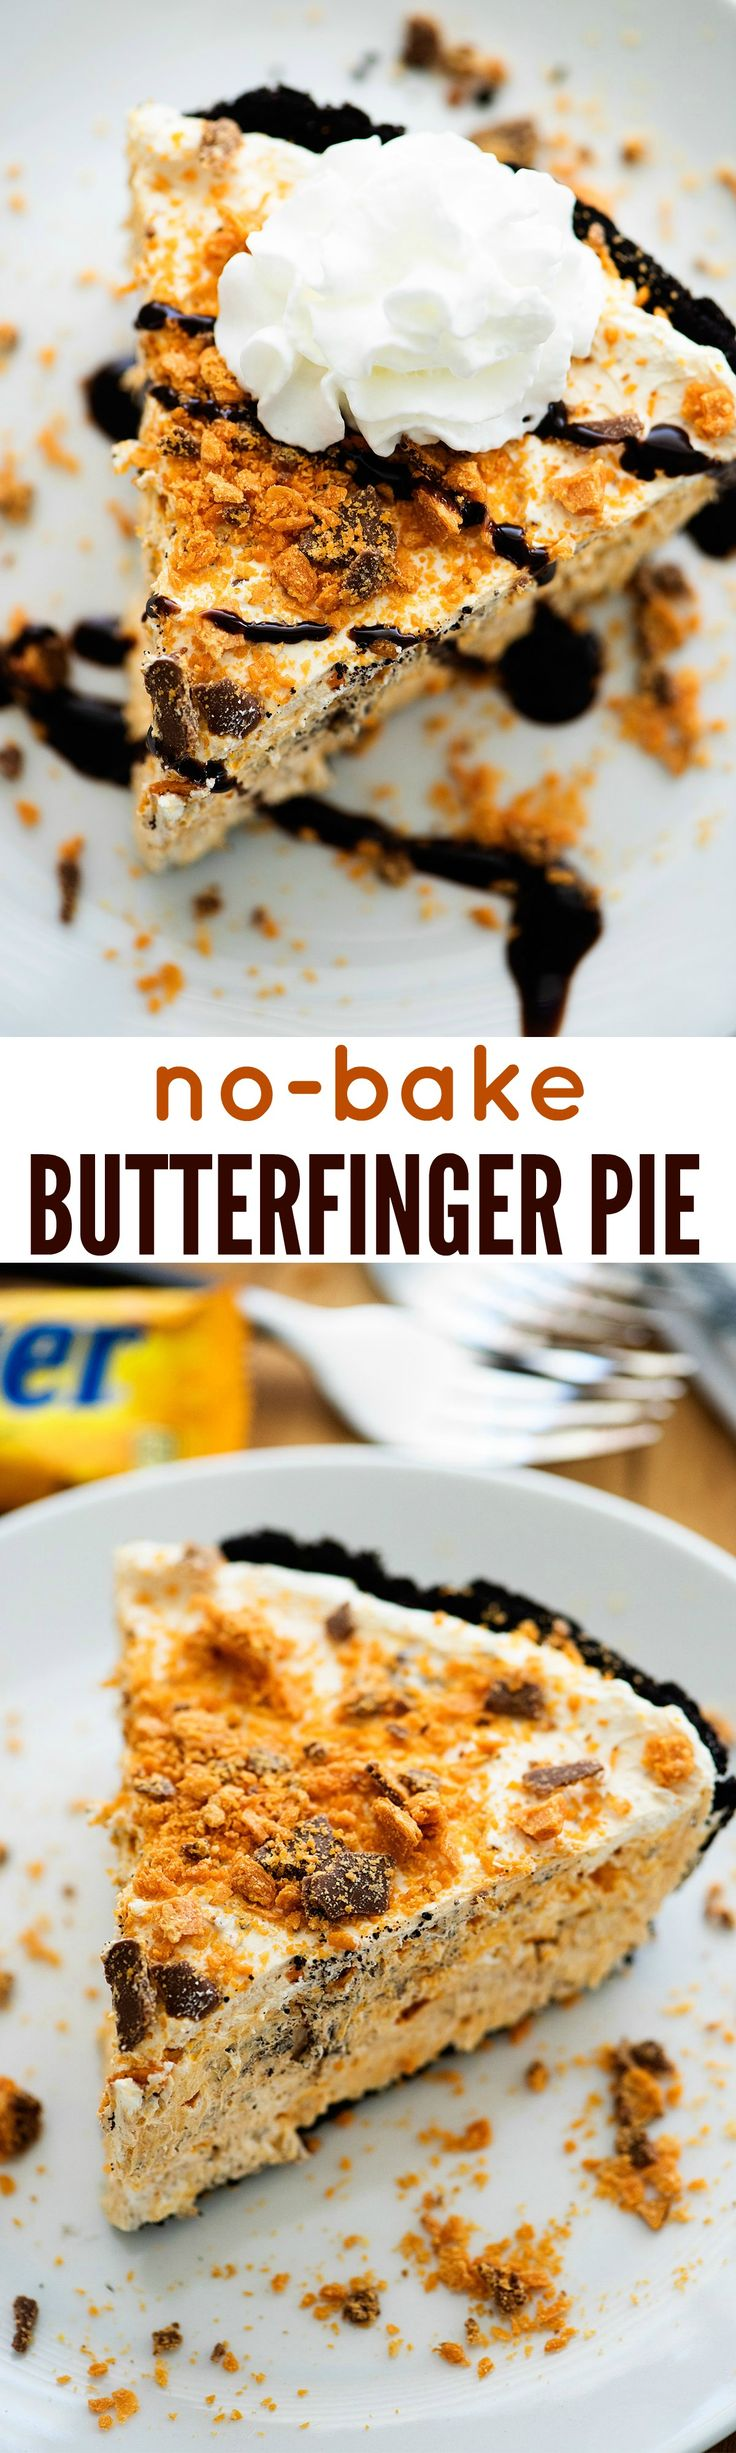 Butterfinger Pie! So creamy and delicious. Only 4 ingredients!